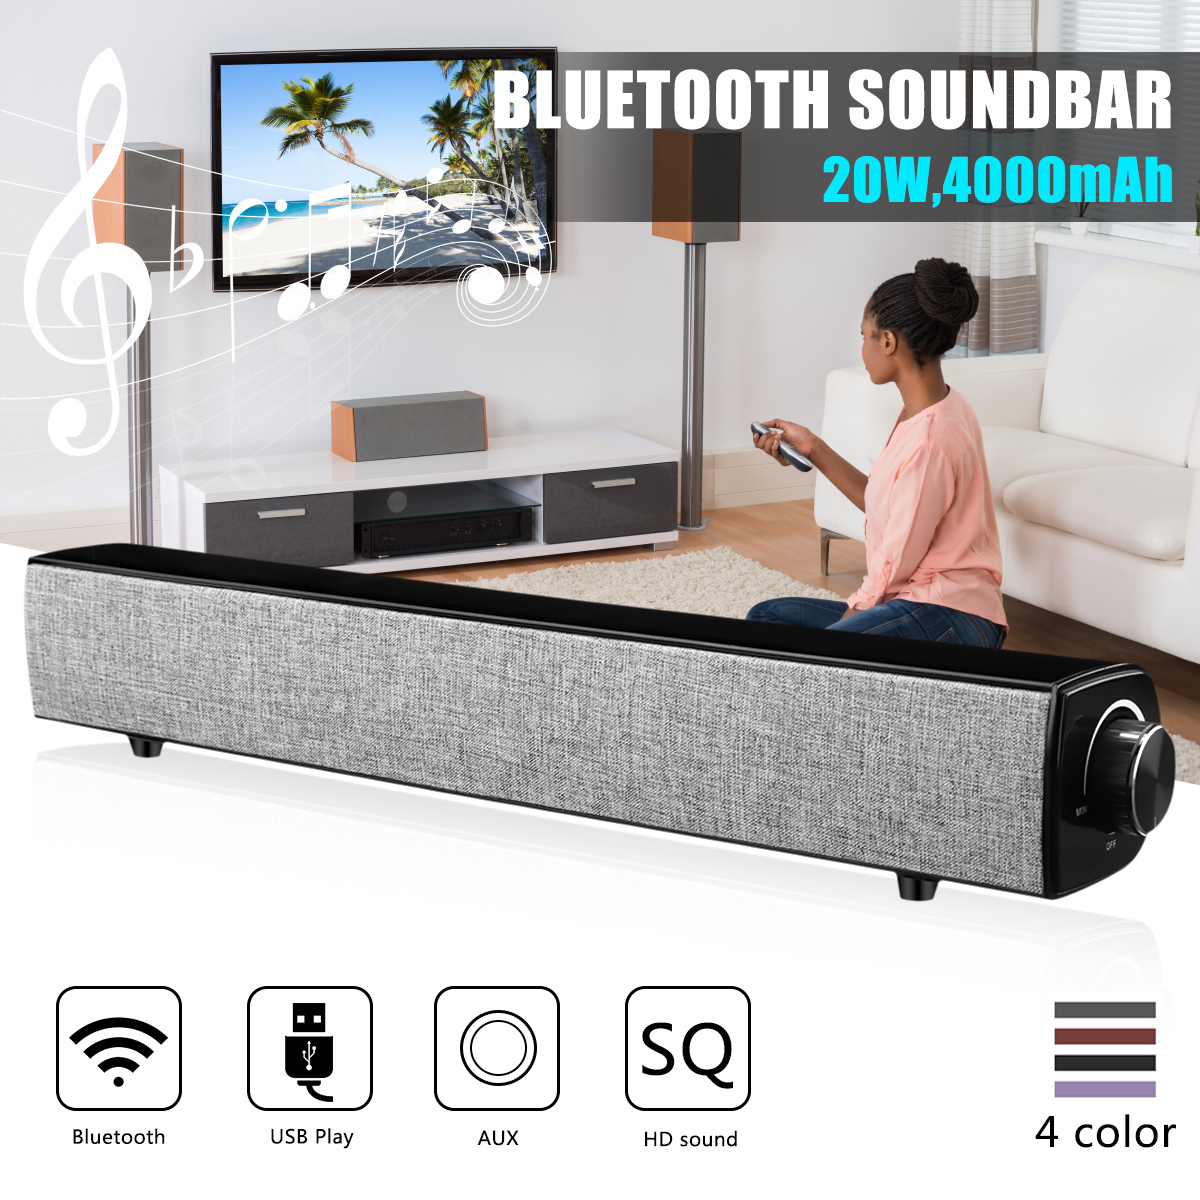 20W Bluetooth Speaker Soundbar Dual 10W 4000mAh Wireless Bass Stereo Family Sound Bar Subwoofer TV Home Theater with Mic USB AUX t rex t rex my people were fair 2 lp